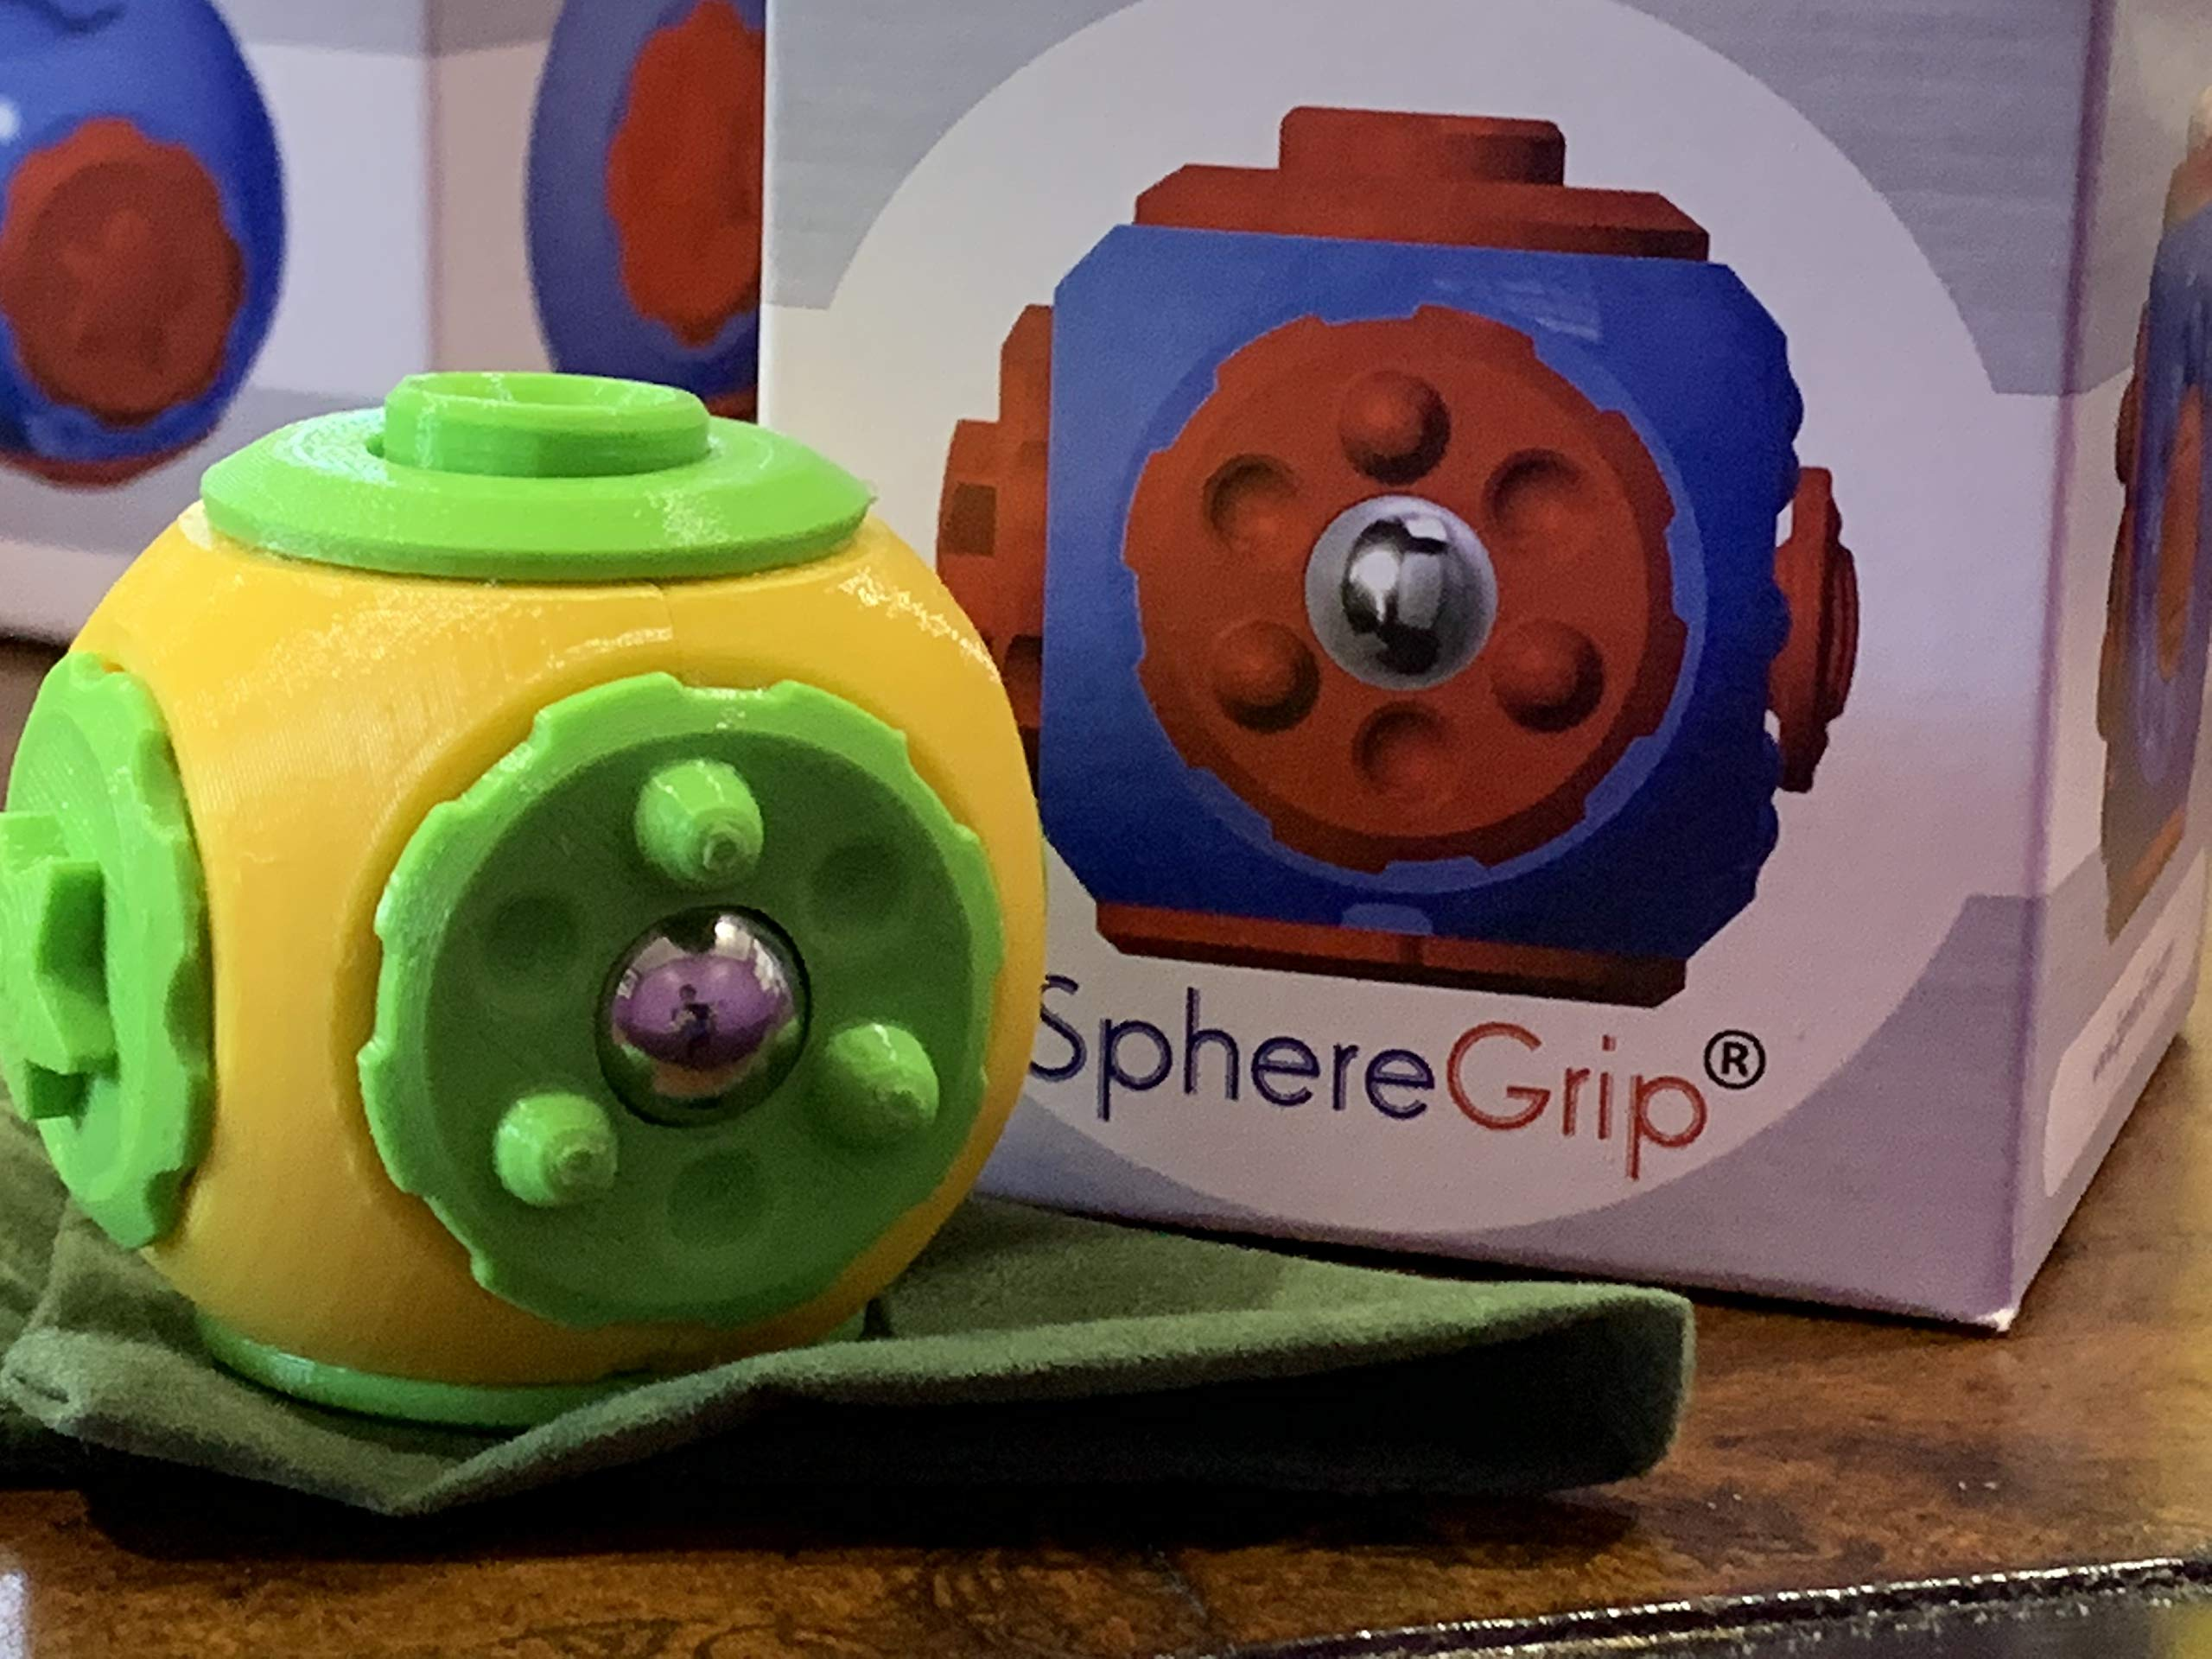 SphereGrip, Fidget toy, Reduce Anxiety and Stress, Increase Self-confidence, Fidget, Storage, Mirror (All 6 combinations) by Arbi Design (Image #5)